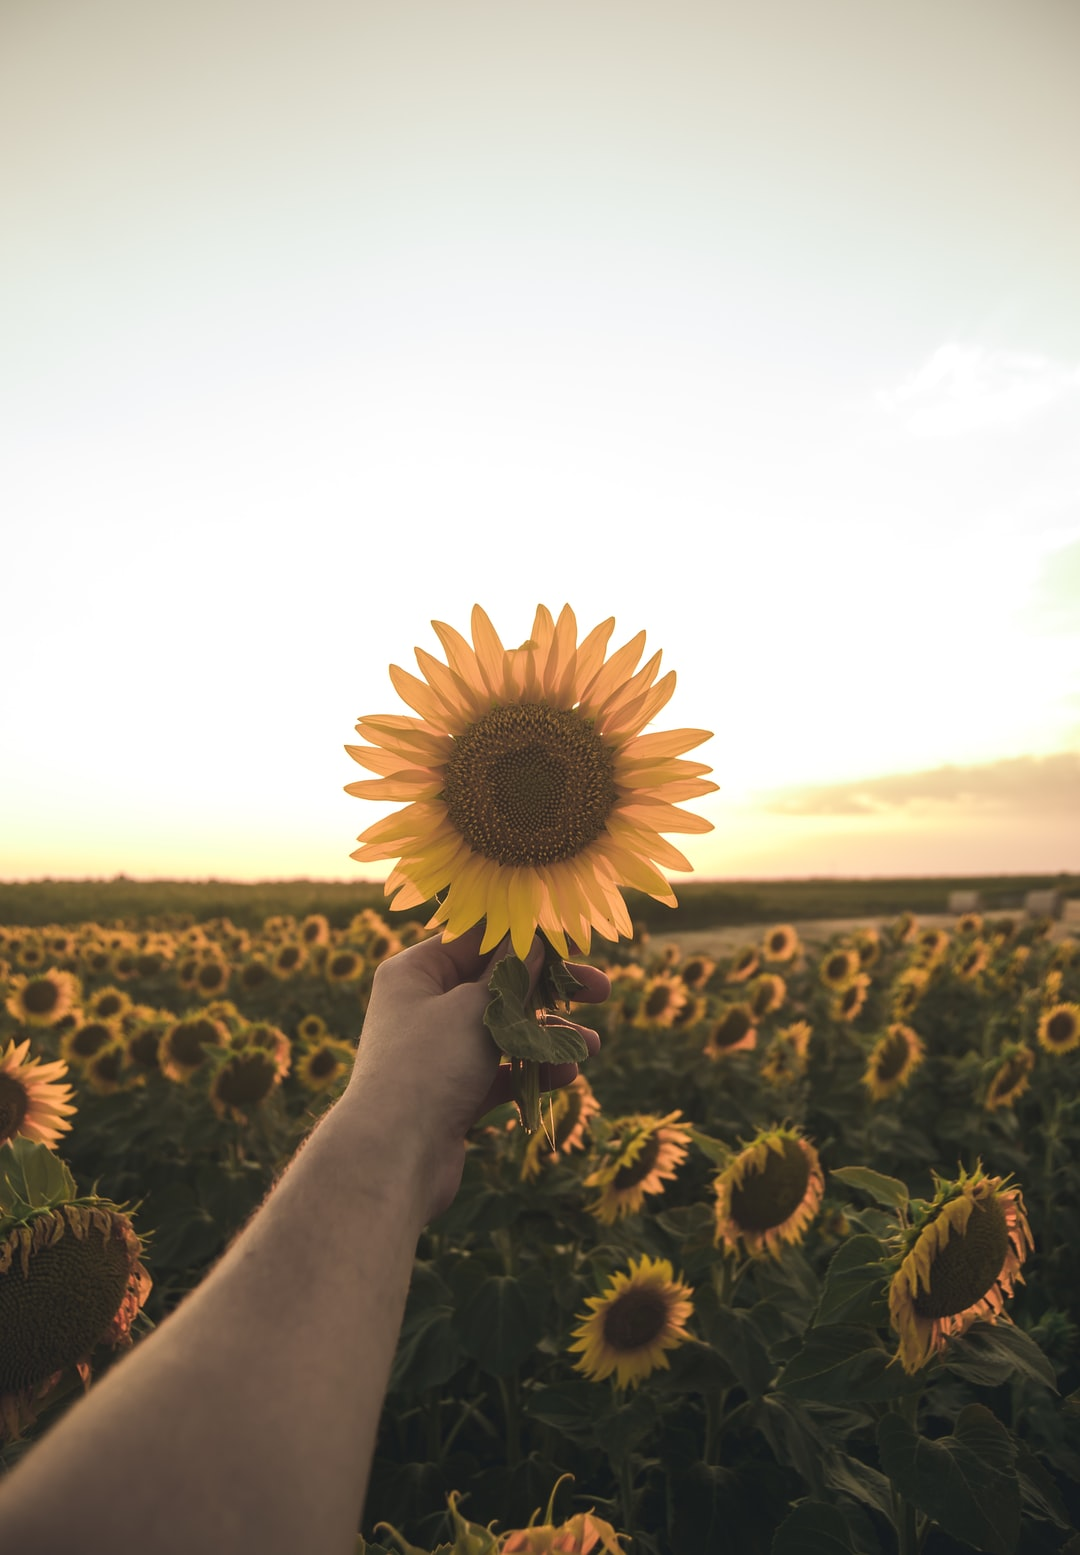 Person Holding Sunflower Photo Free Flower Image On Unsplash